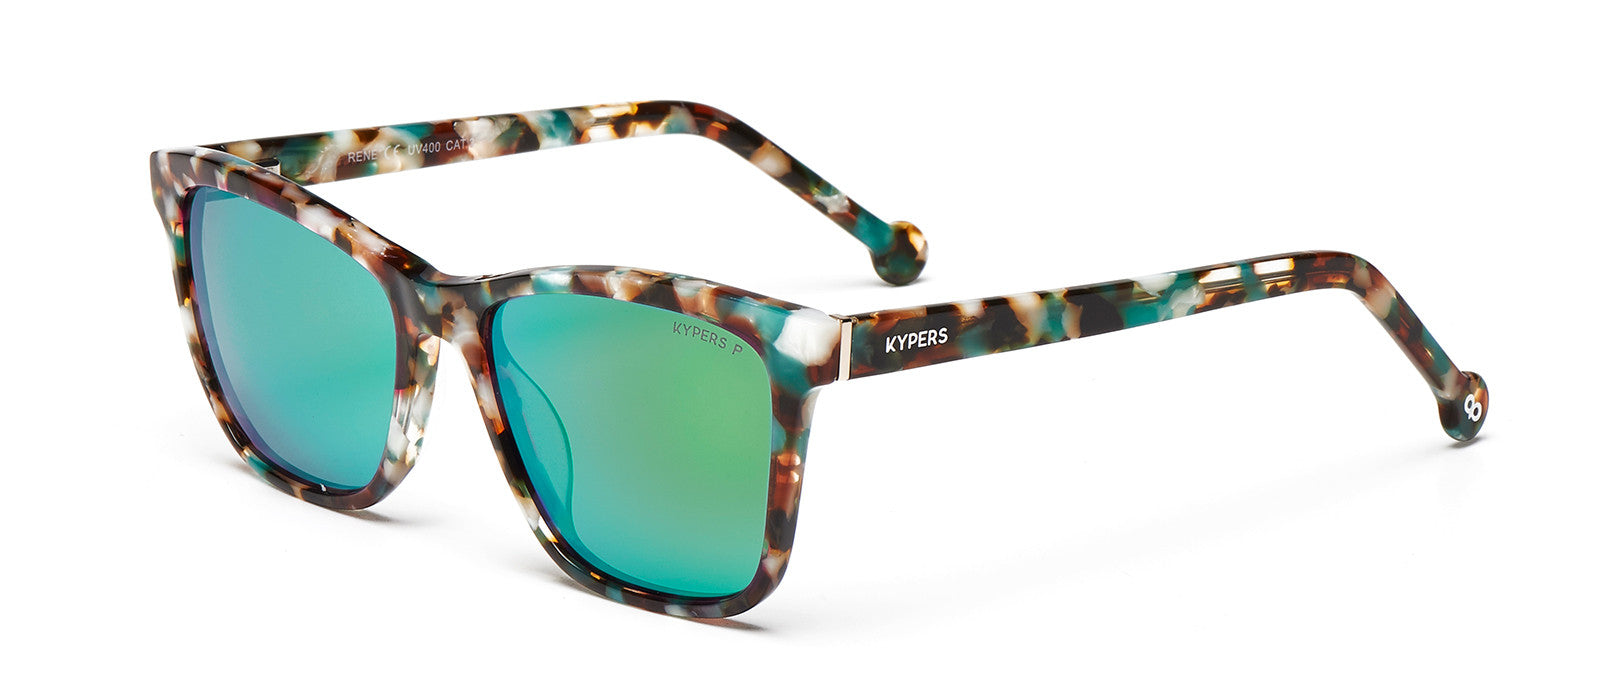 KYPERS sunglasses model RENÉ  with  frame and  lens